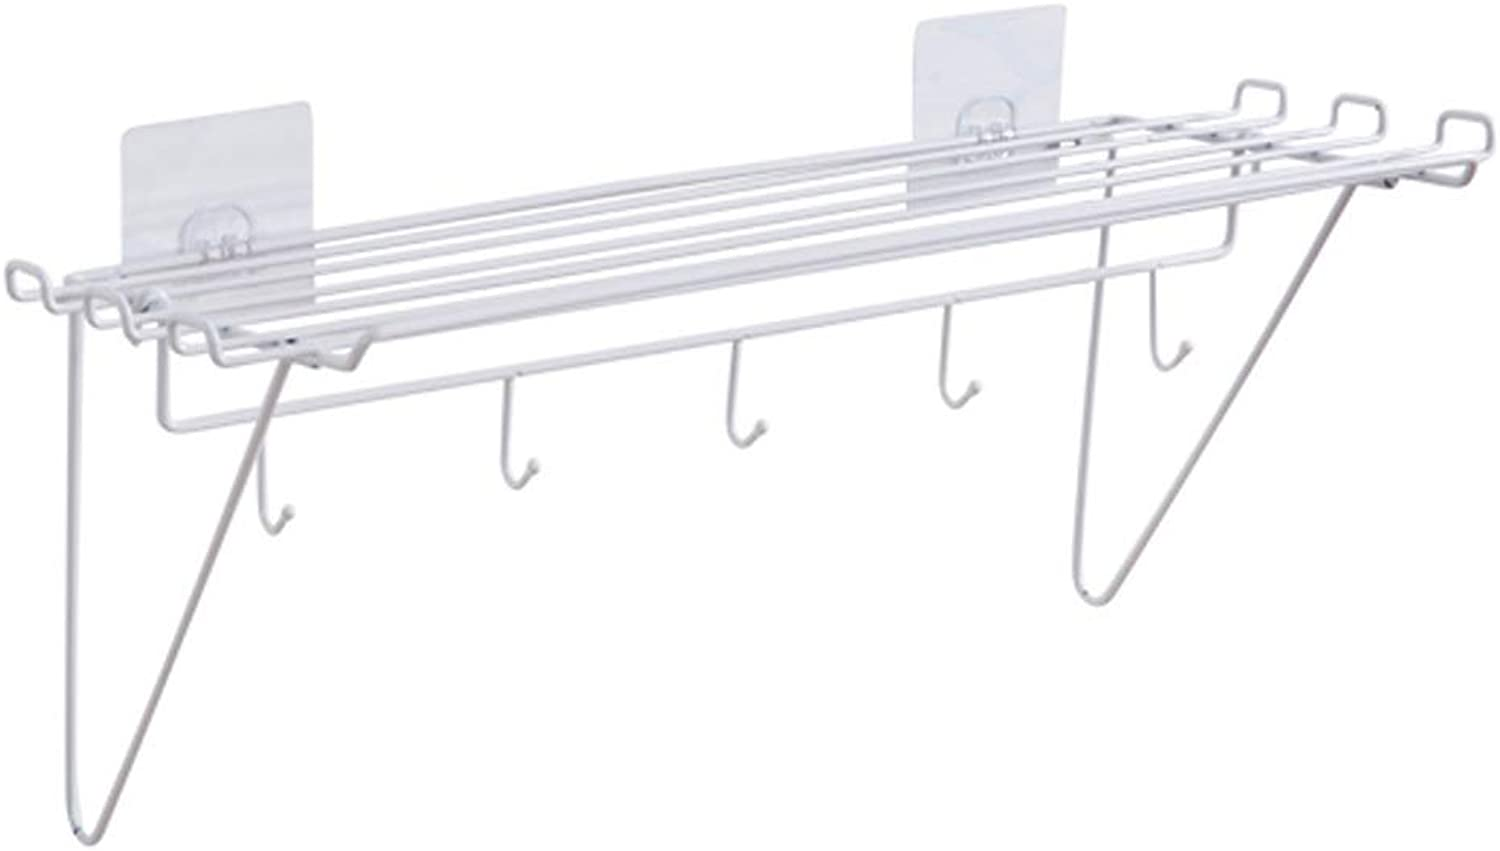 Rishx Punch-Free Bathroom Shelf Kitchen Metal Storage Rack with 5 Hooks Wall Hanging Shelves Basket Large Capacity Bathroom Accessories Organizer (color   White)